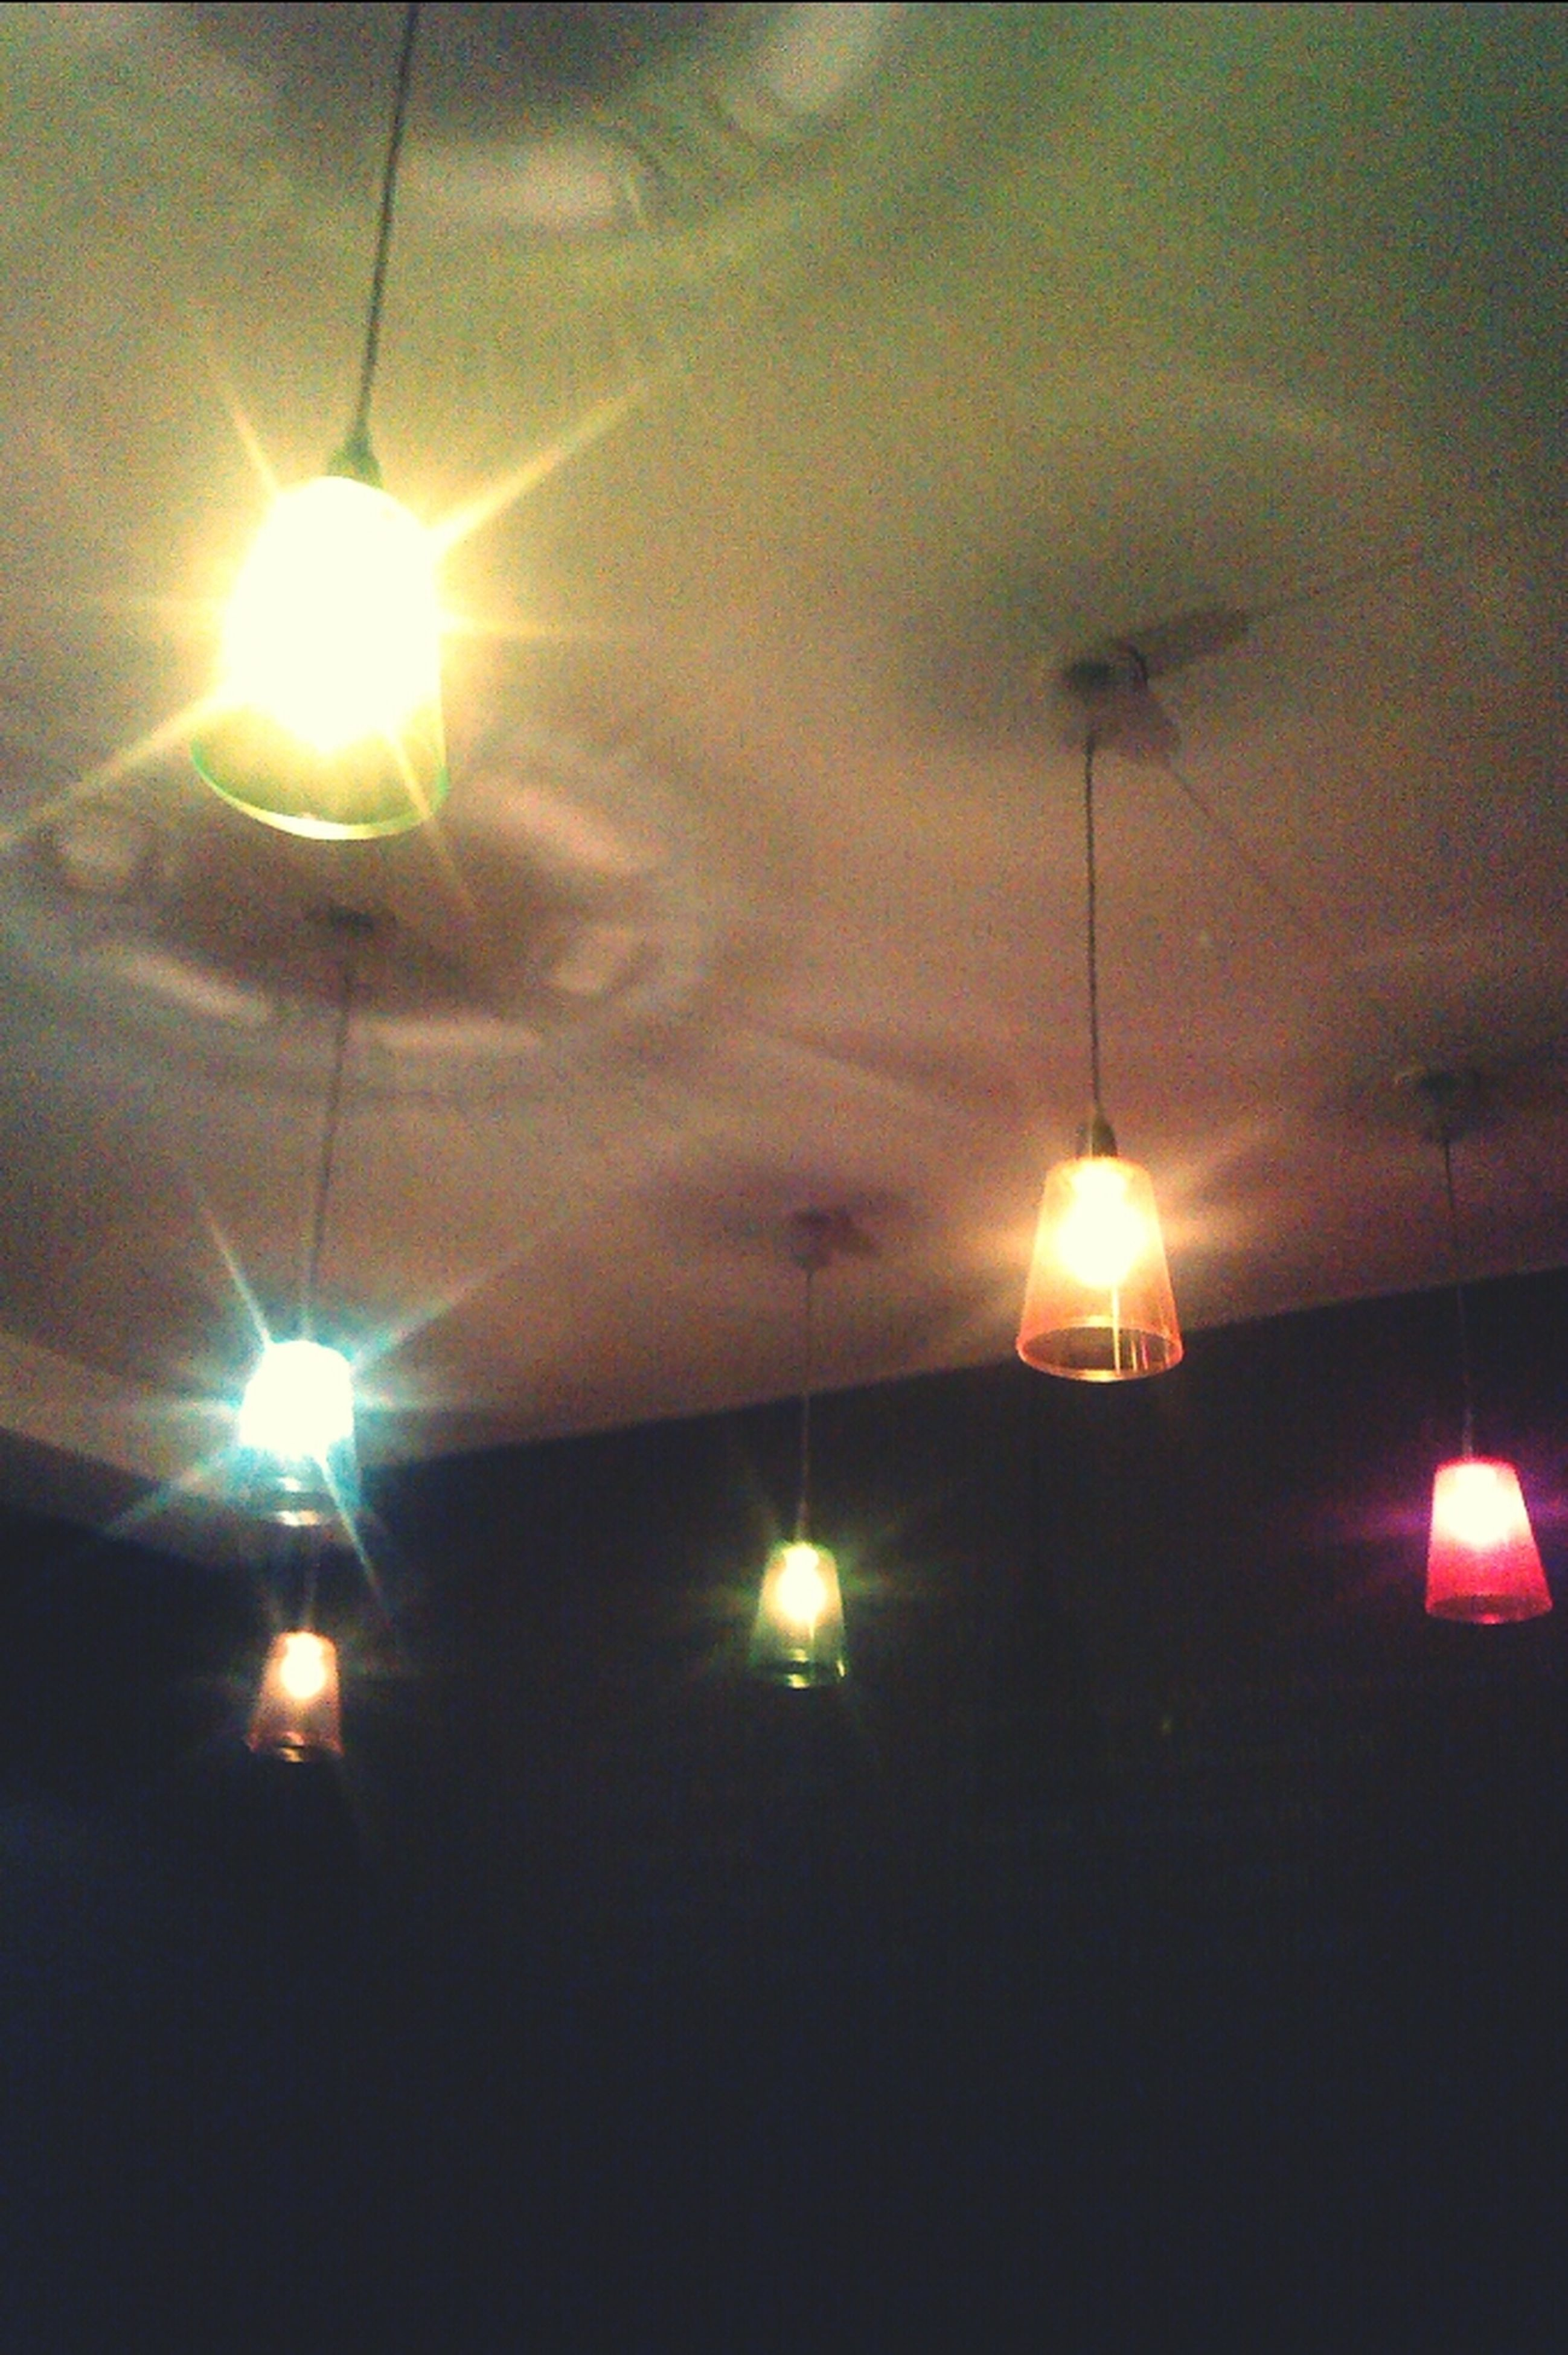 illuminated, lighting equipment, electricity, electric light, street light, low angle view, indoors, electric lamp, glowing, ceiling, hanging, light - natural phenomenon, night, lamp, decoration, lit, lantern, light bulb, no people, in a row